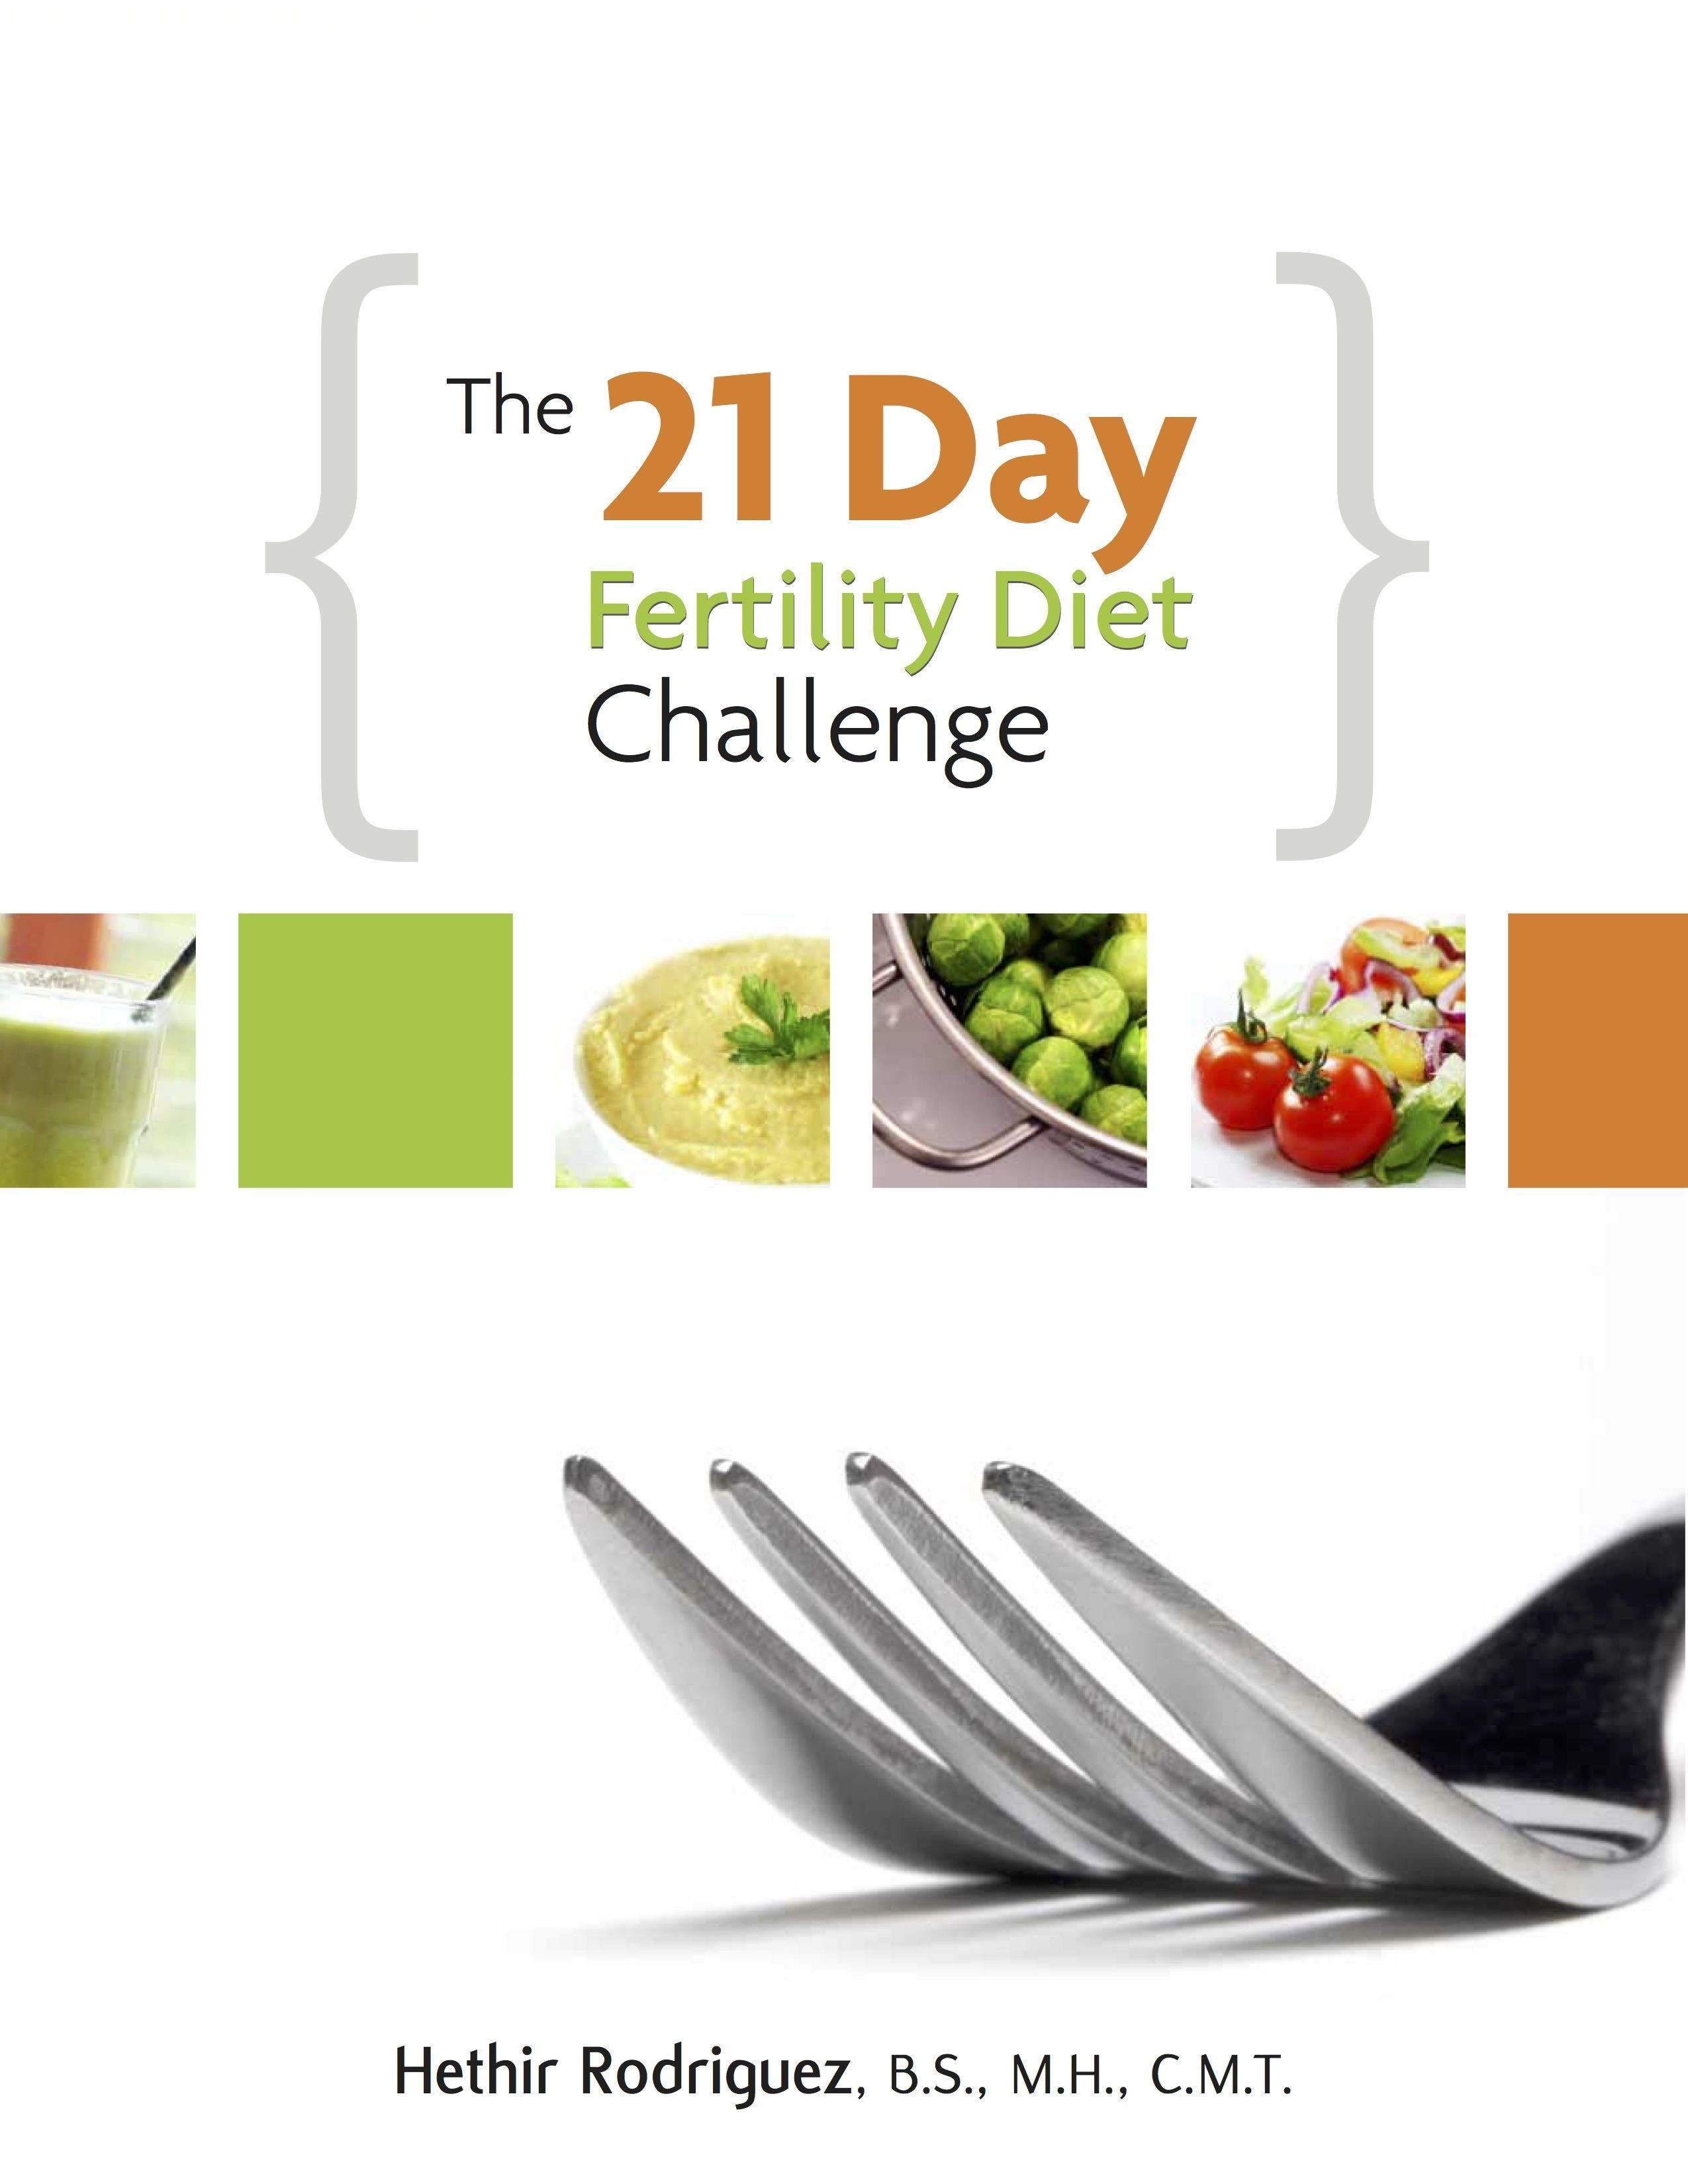 3 Ways To Get Started On A Natural Fertility Program